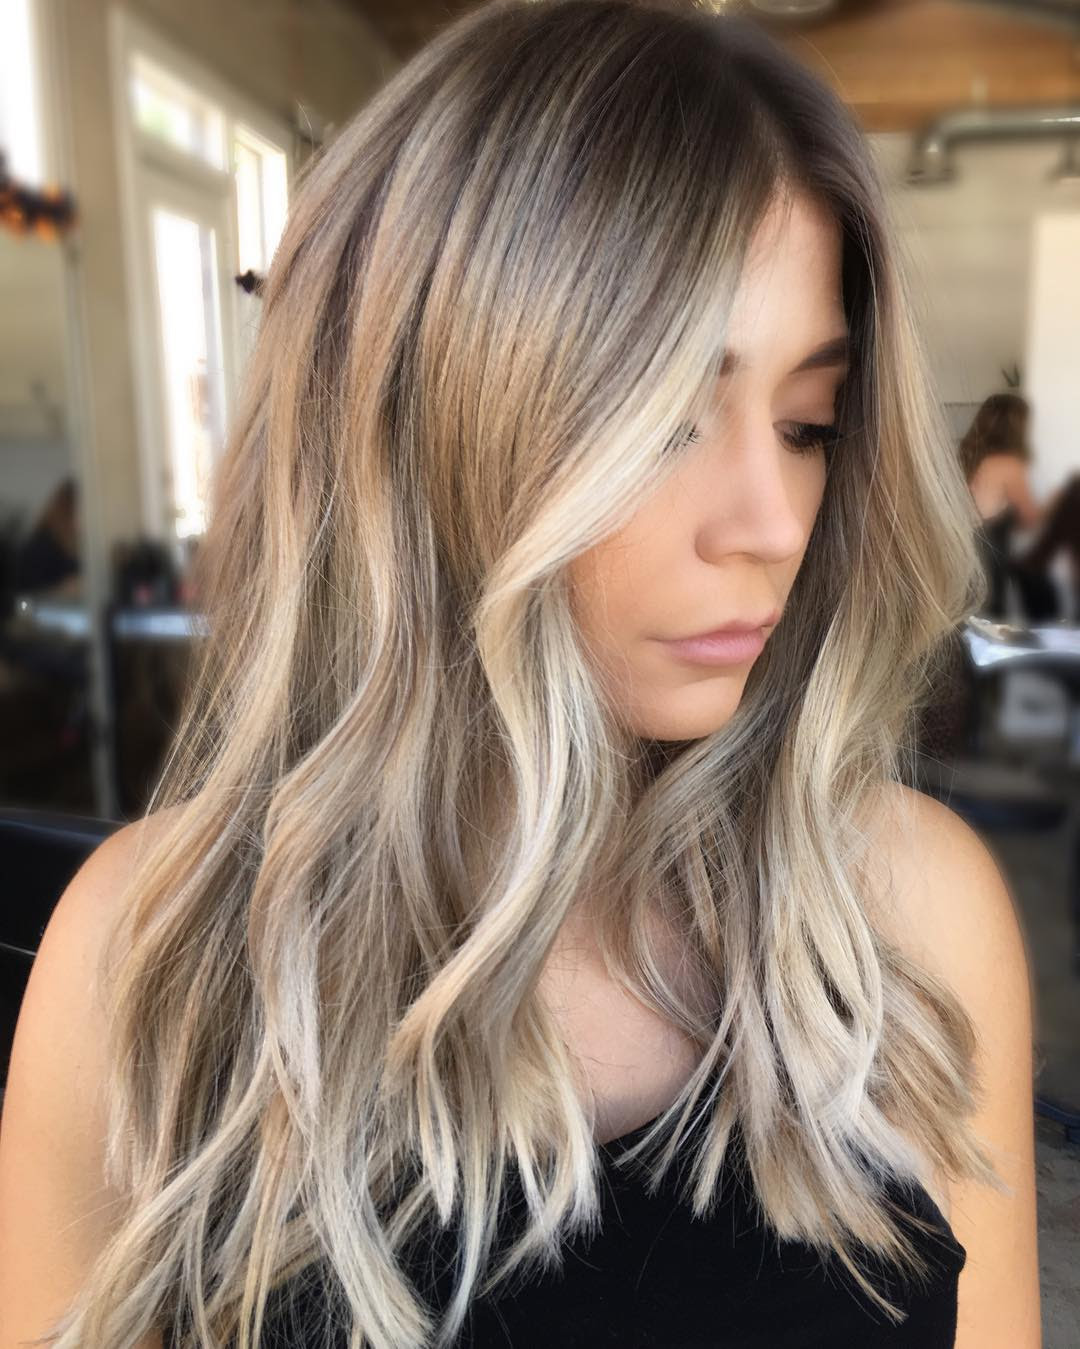 Seven Things You Need To Know About Popular Hair Styles Today